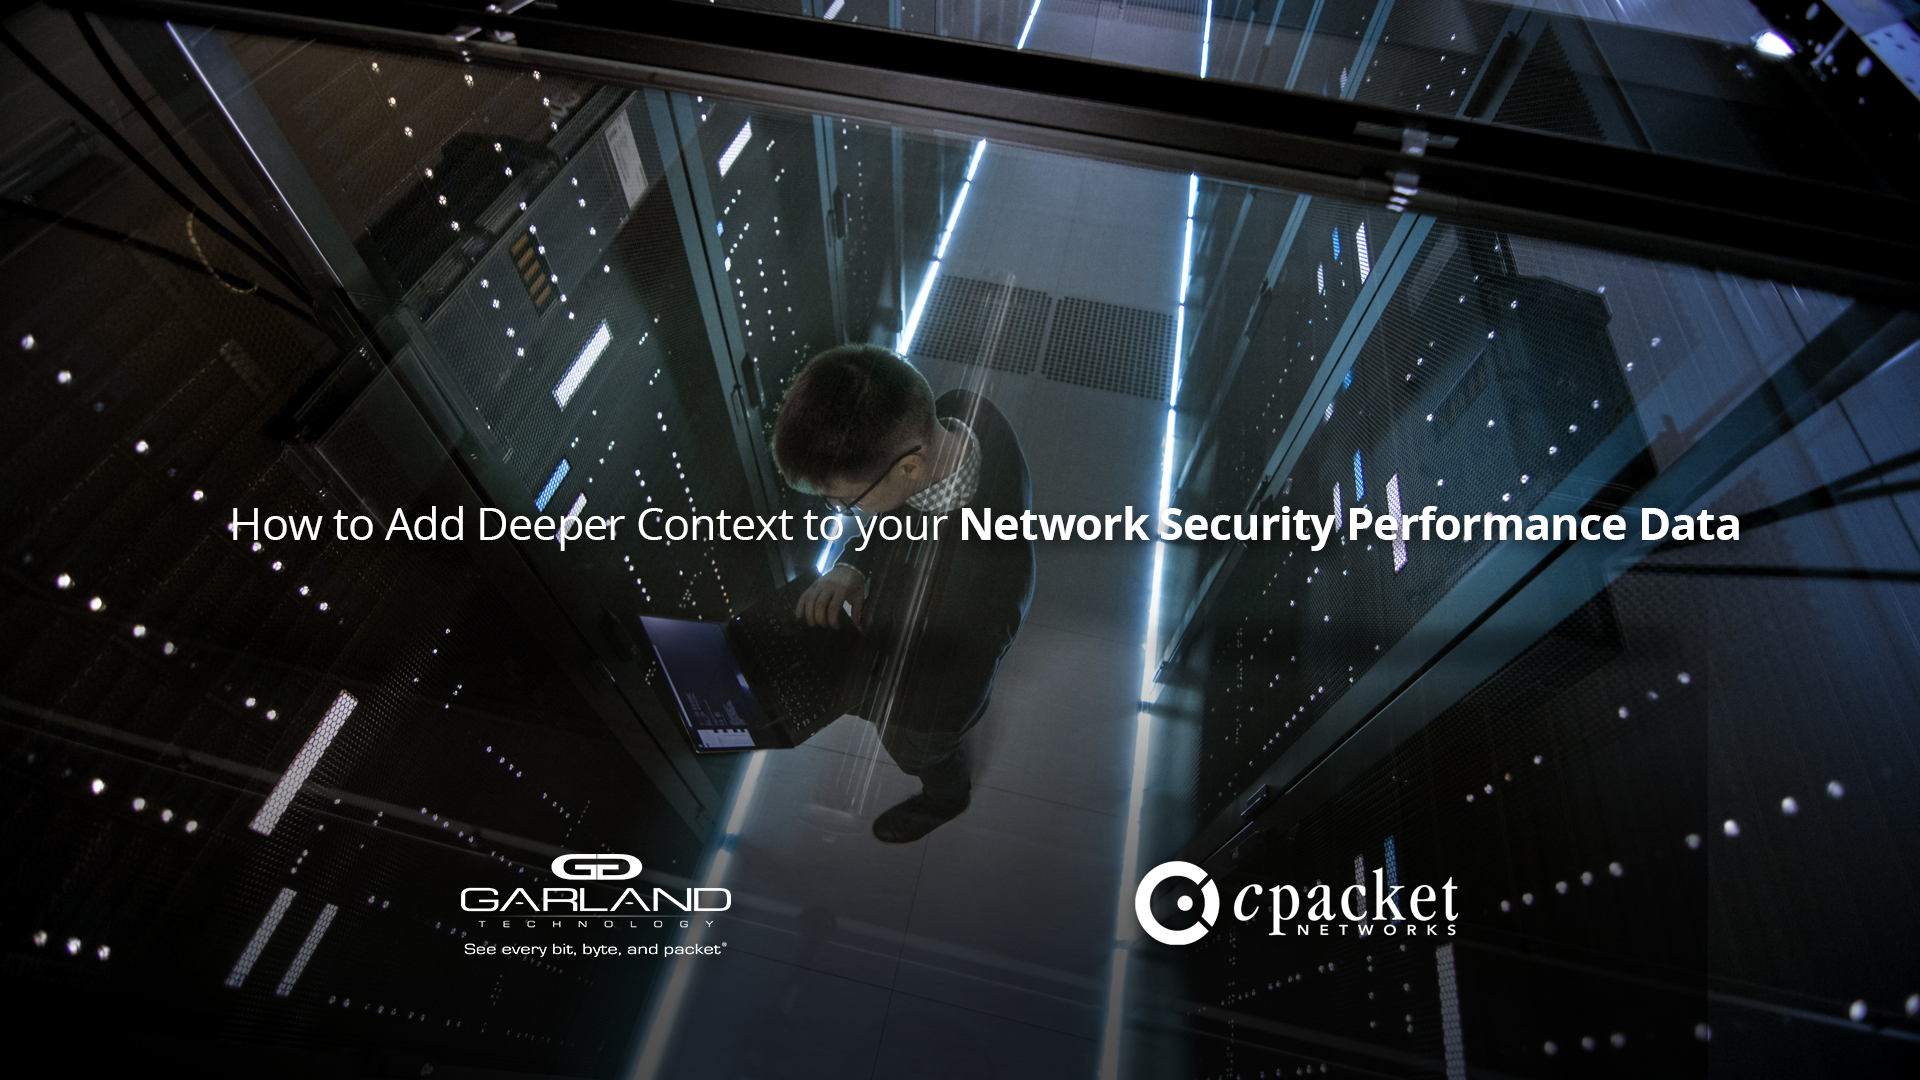 On-Demand Webinar with cPacket